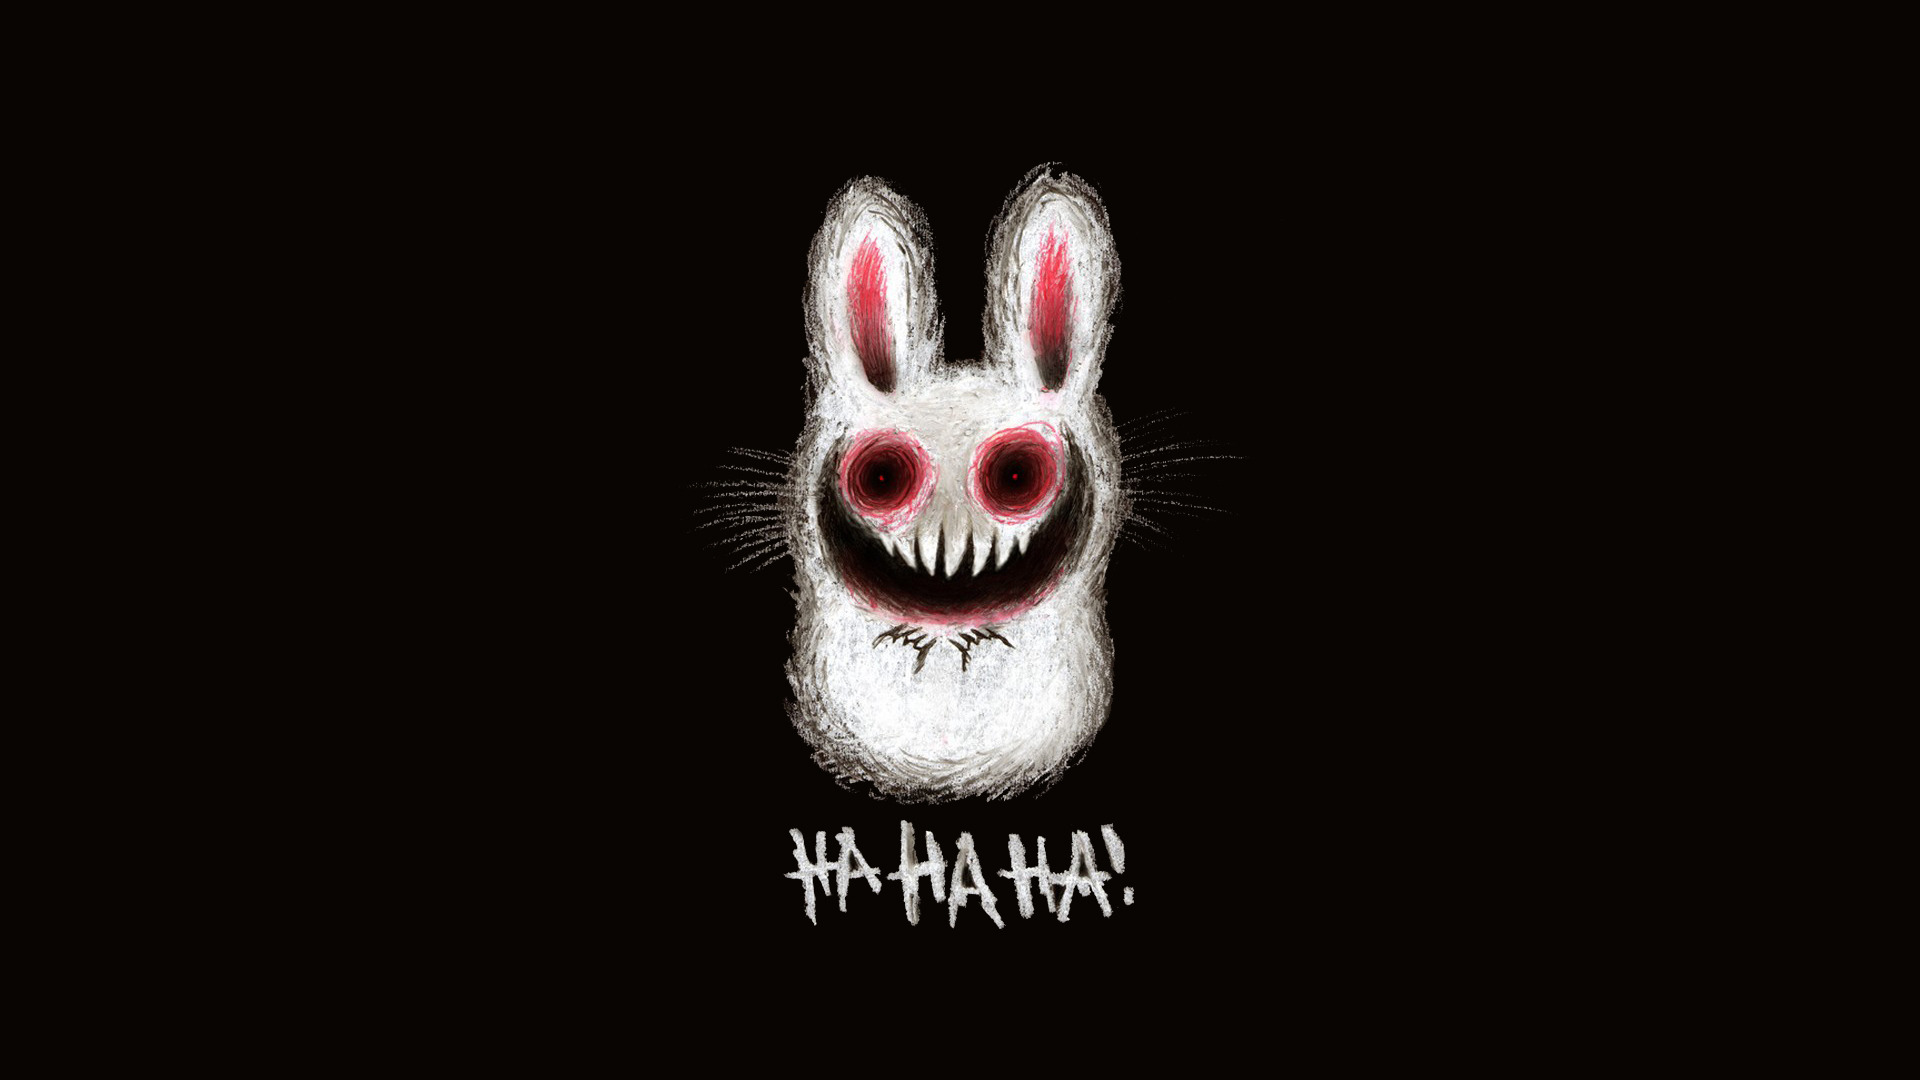 Wallpapers Creepy 20 Wallpapers Adorable Wallpapers 1920x1080